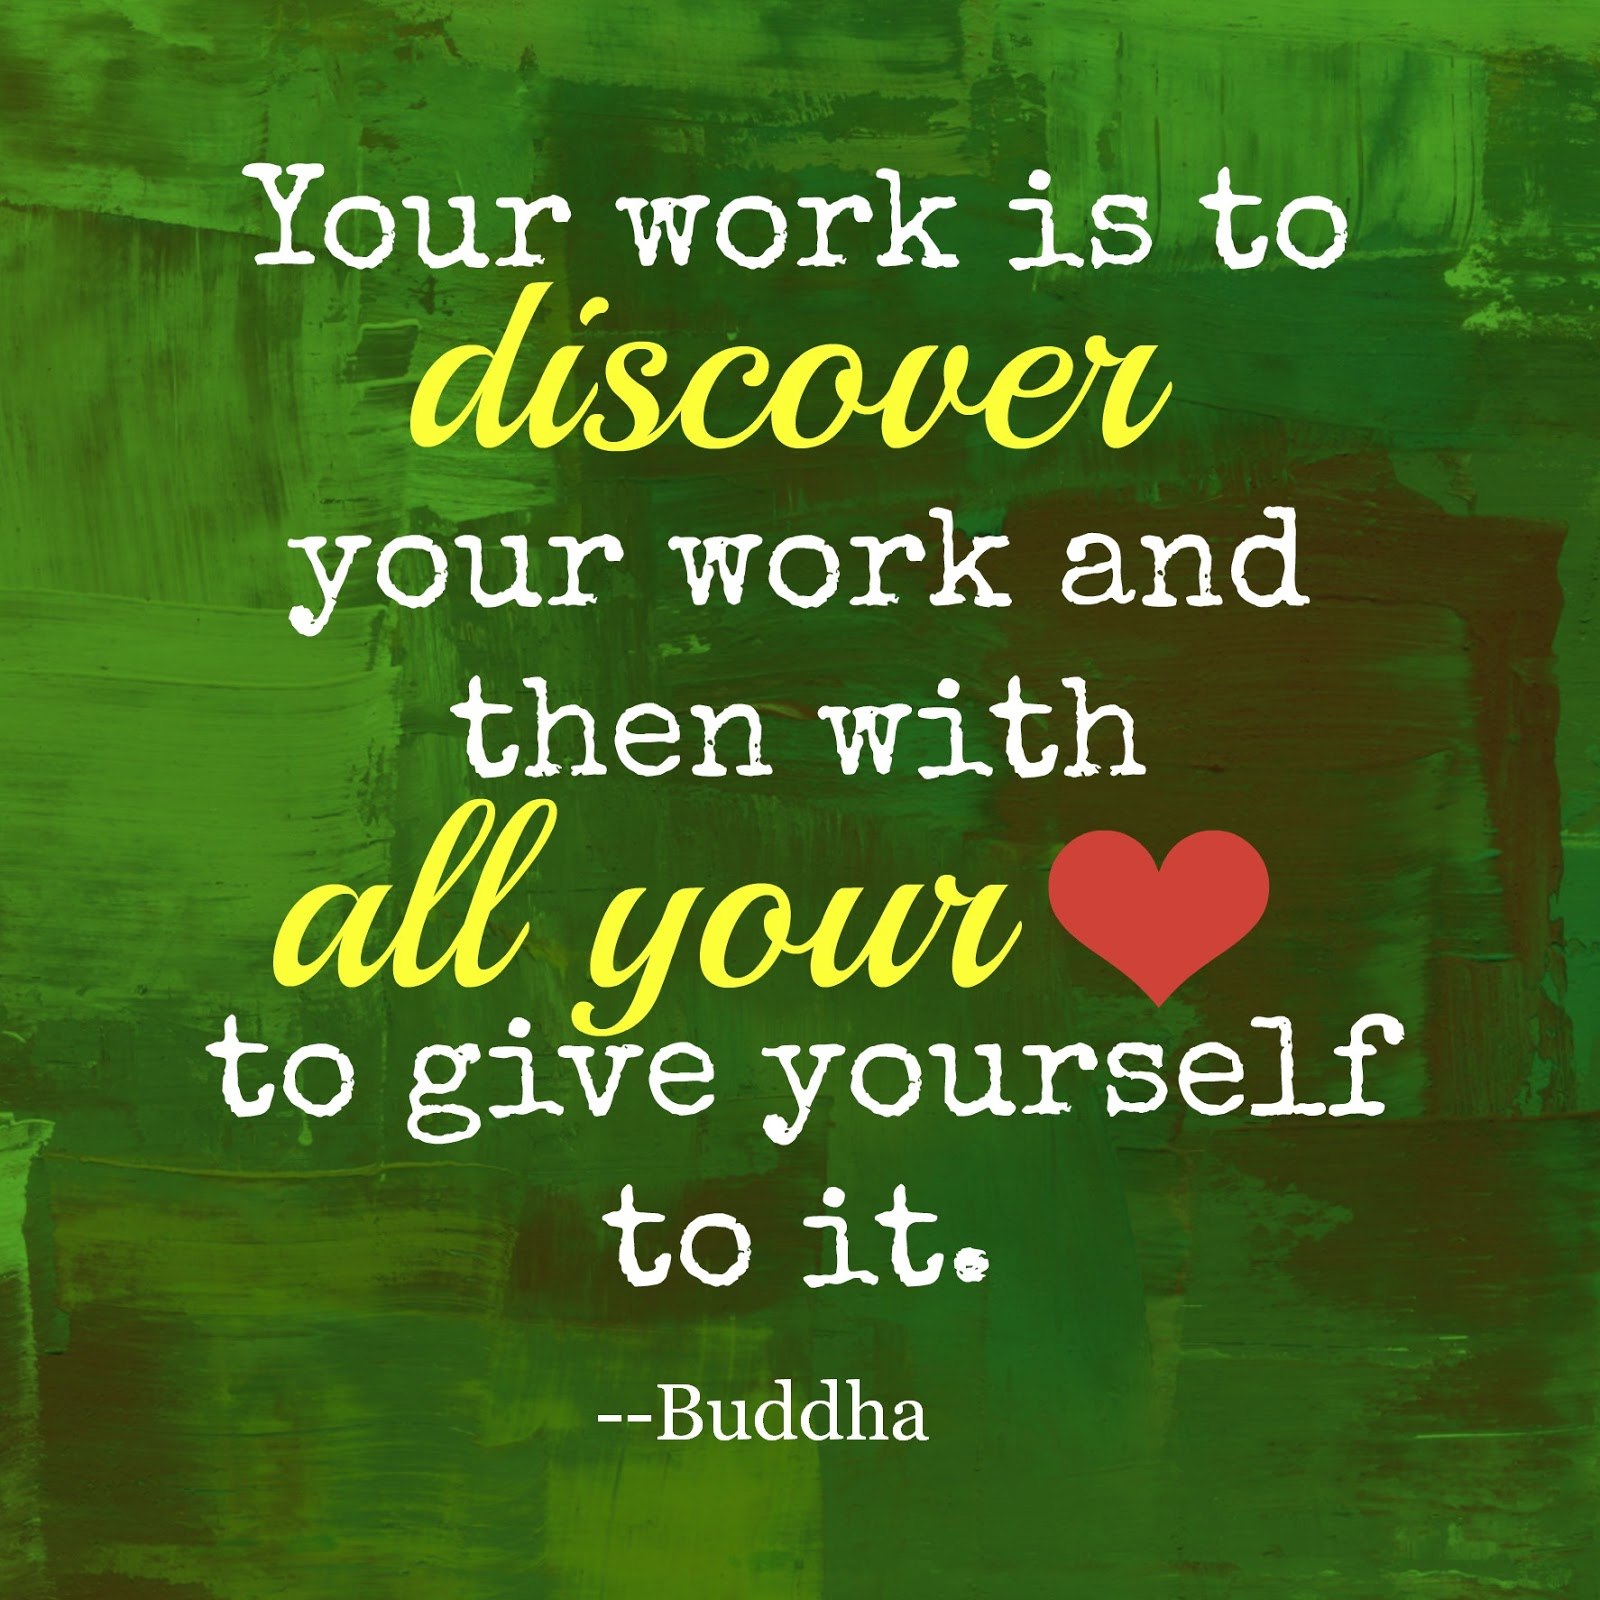 Buddha quote about work